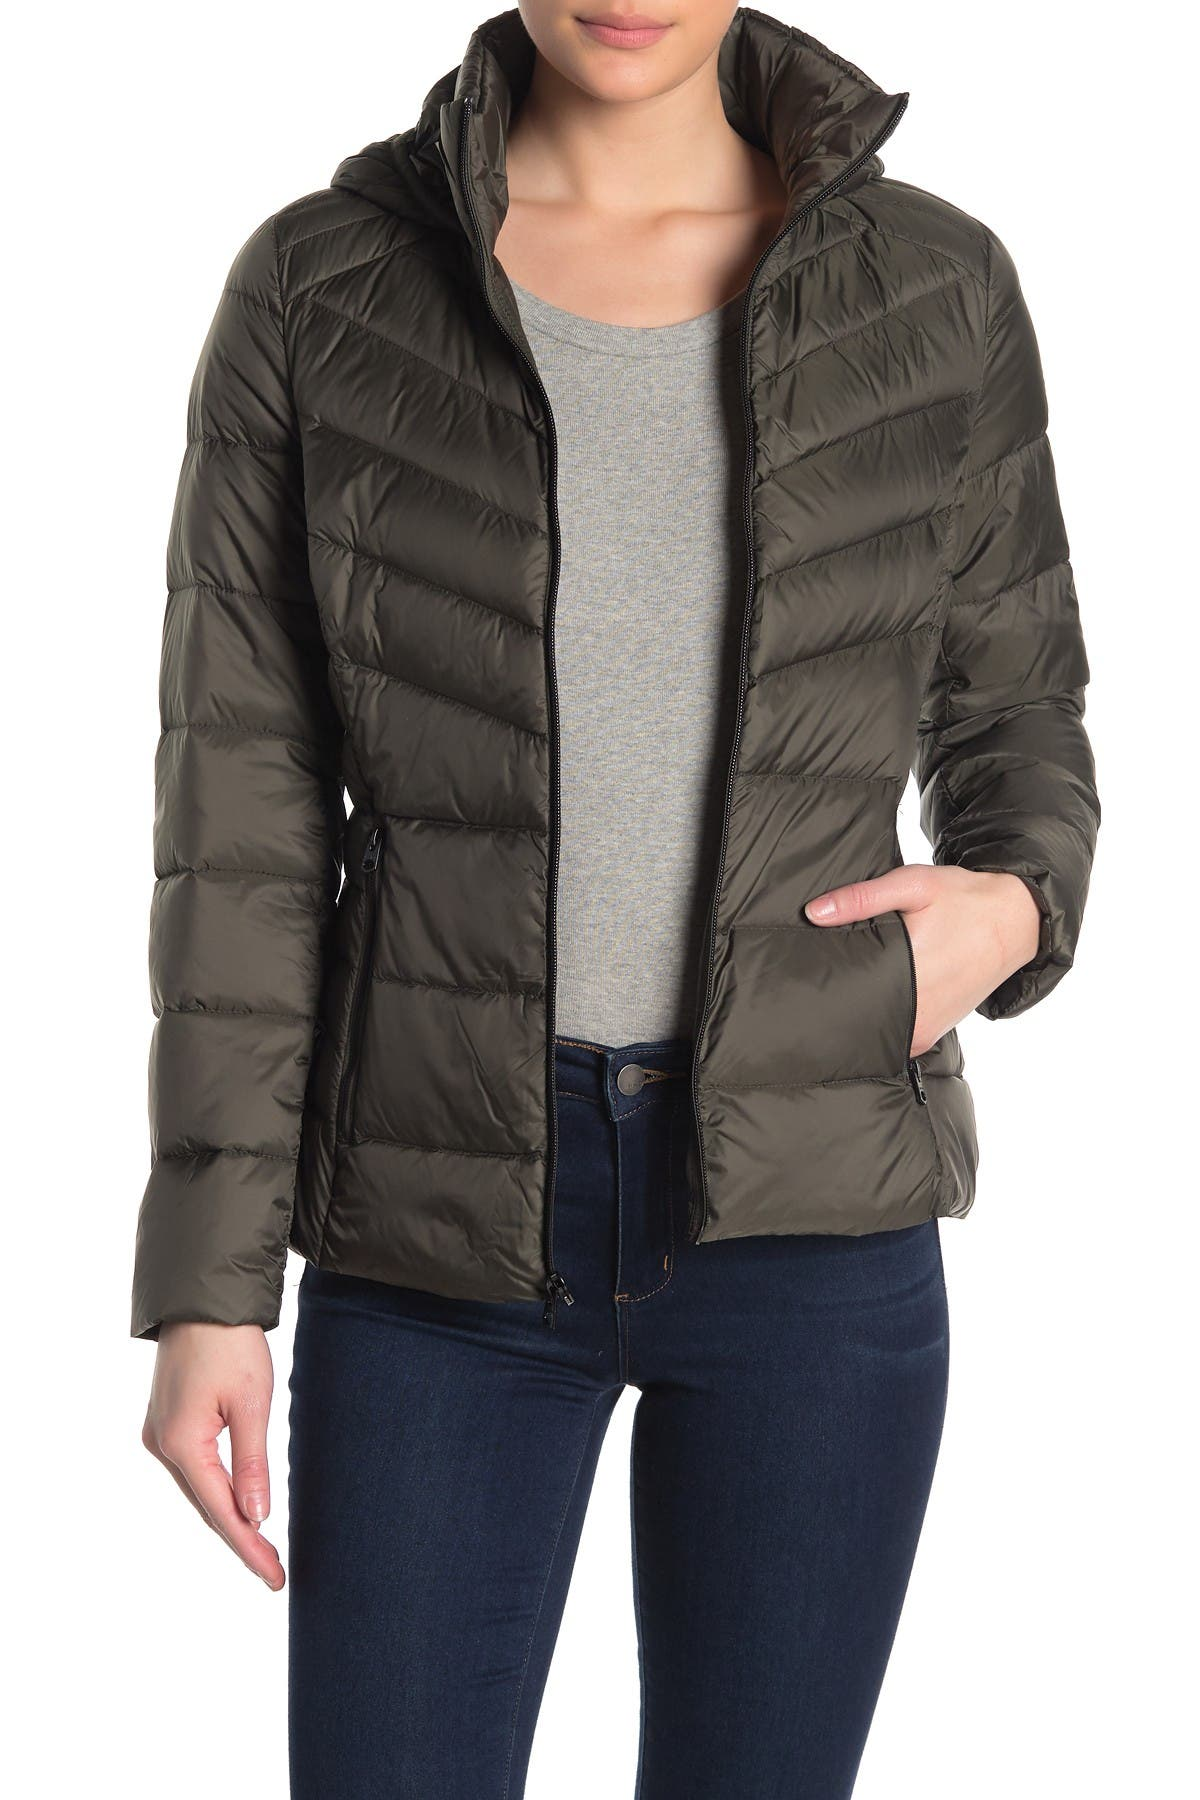 Image of Lucky Brand Missy Hooded Short Packable Down Jacket